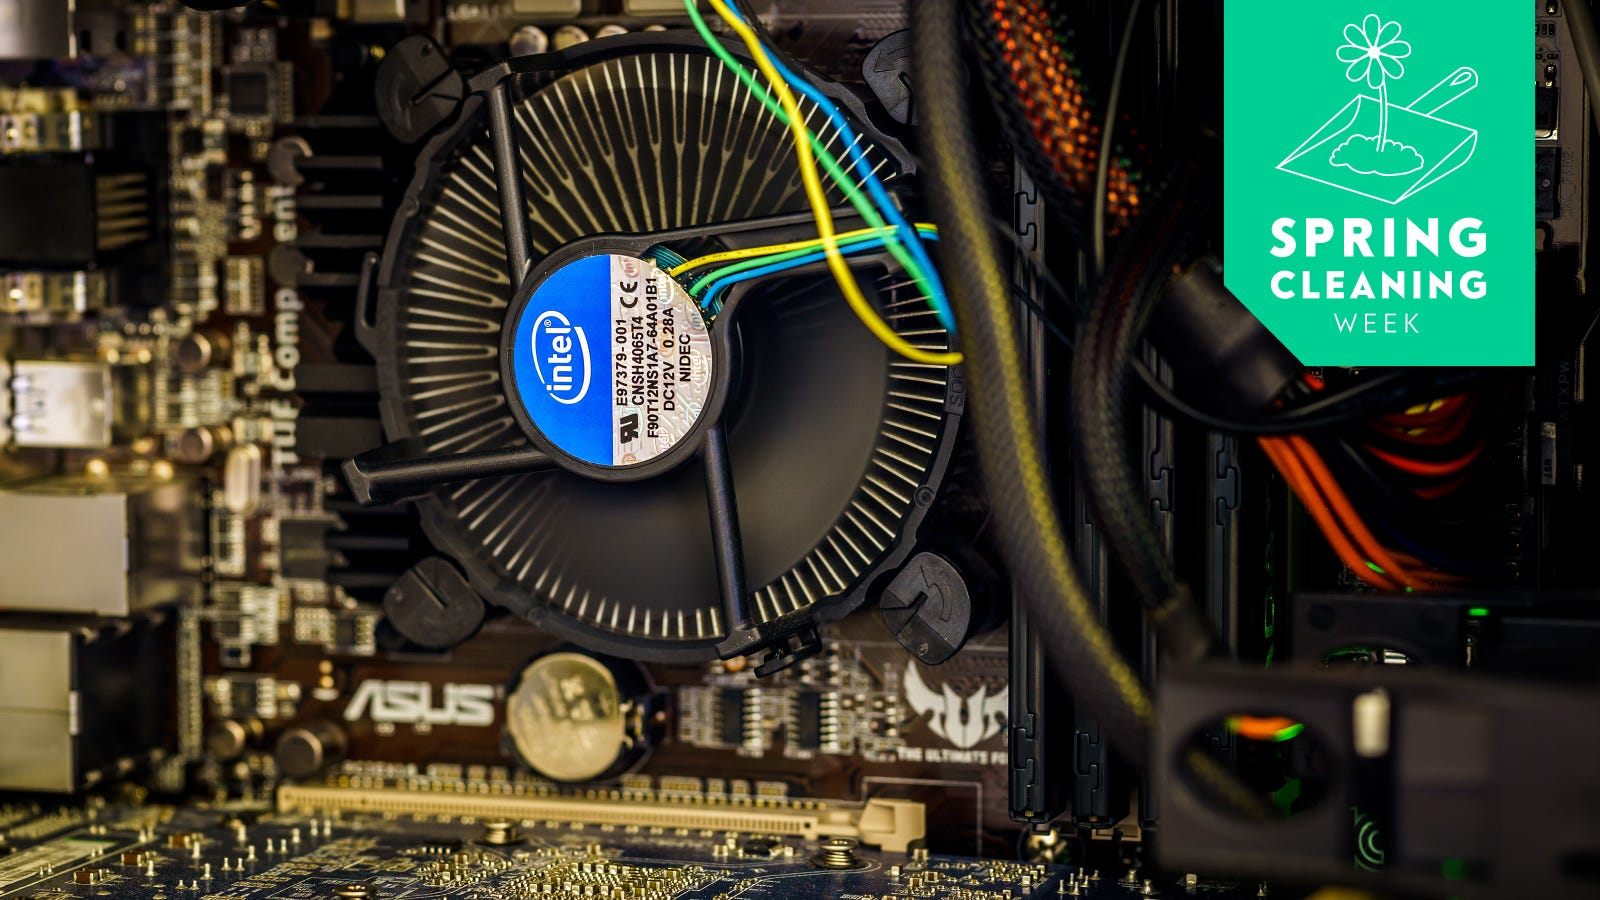 How To Clean Your Dusty Messy Desktop Pc The Resistor Is On Left Side Of Board Close Heat Sink